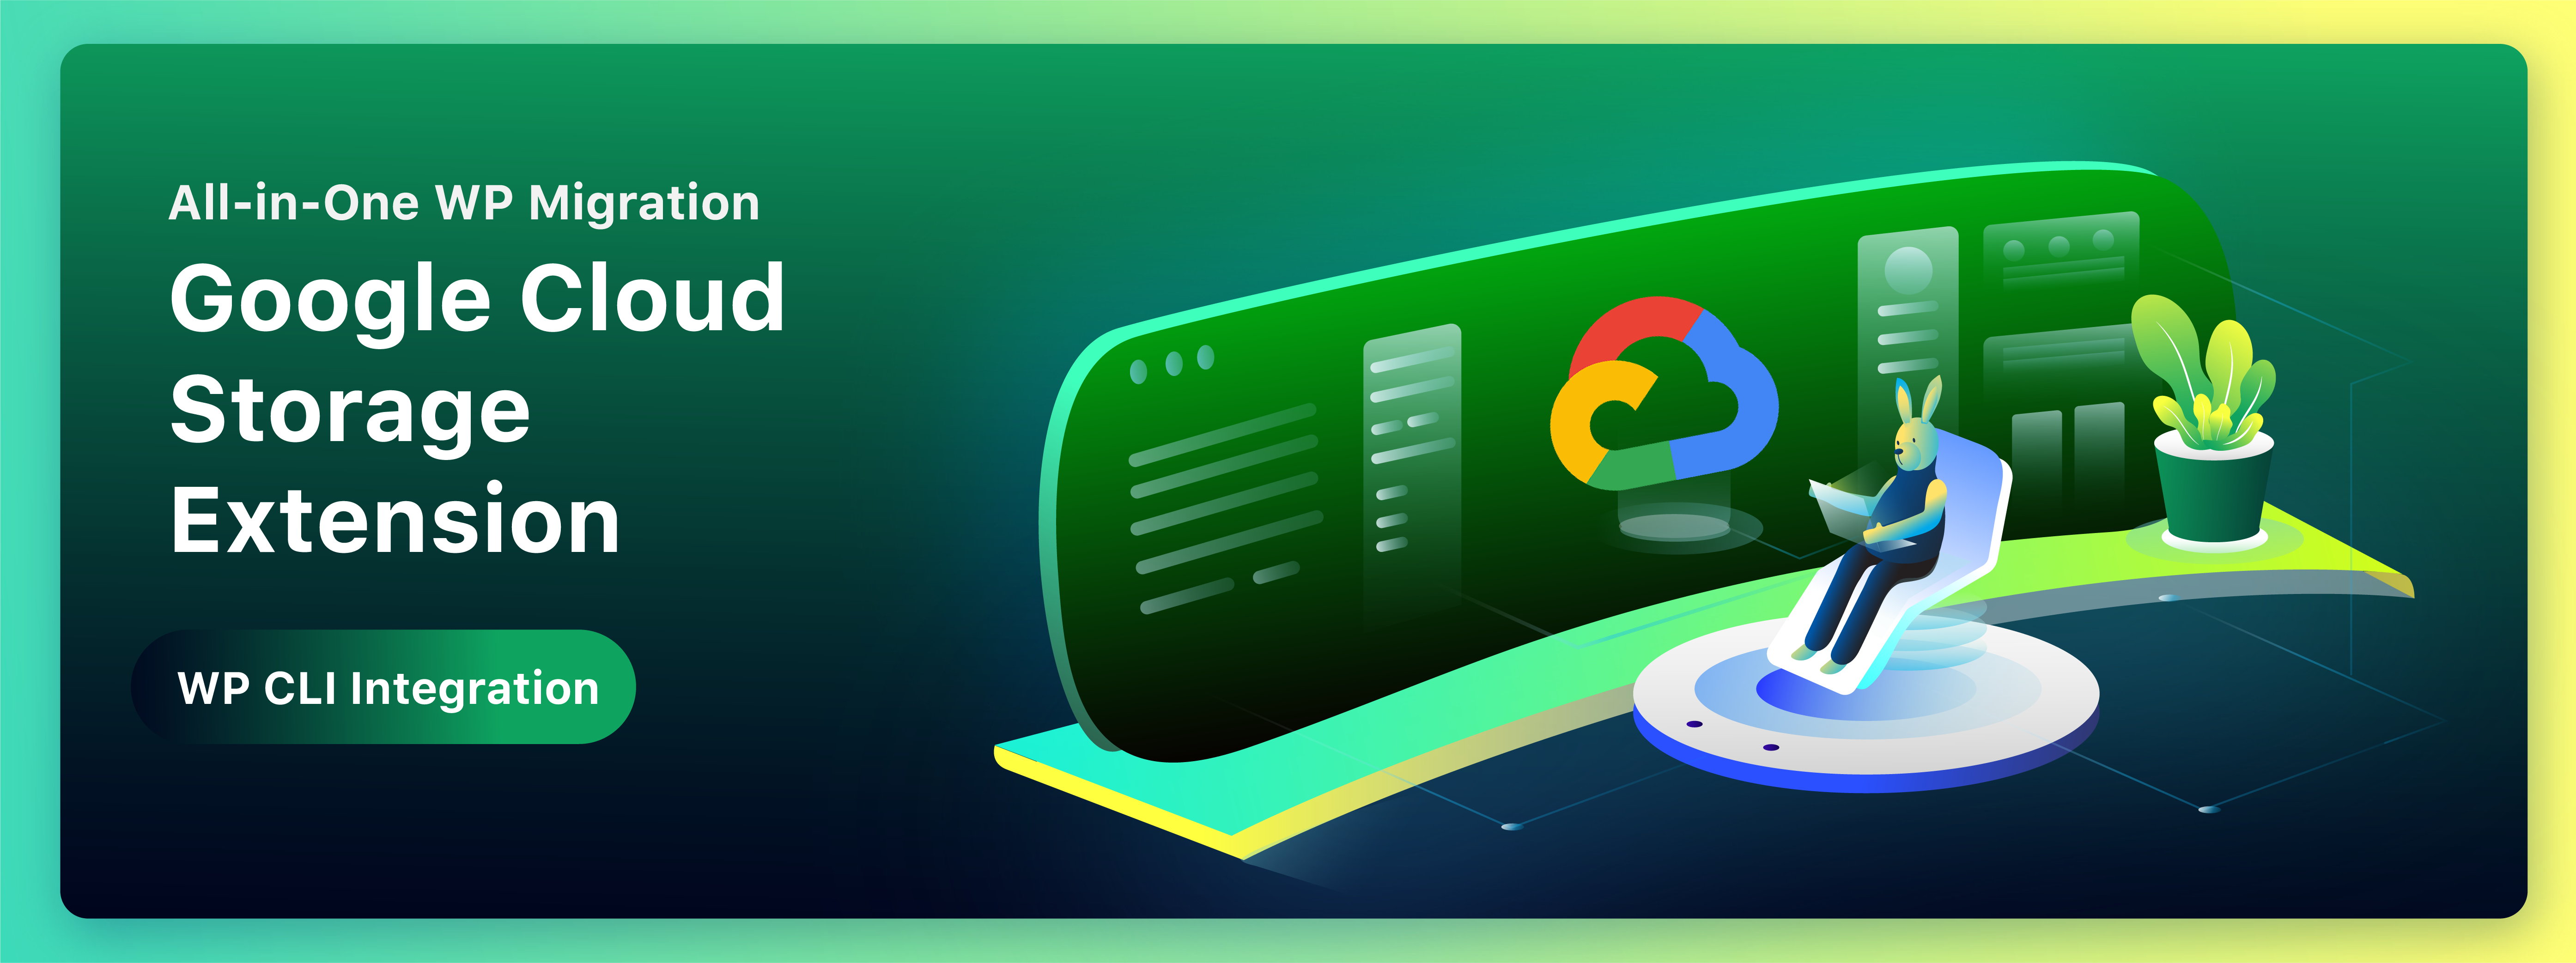 All-in-One WP Migration Google Cloud Storage Extension WP